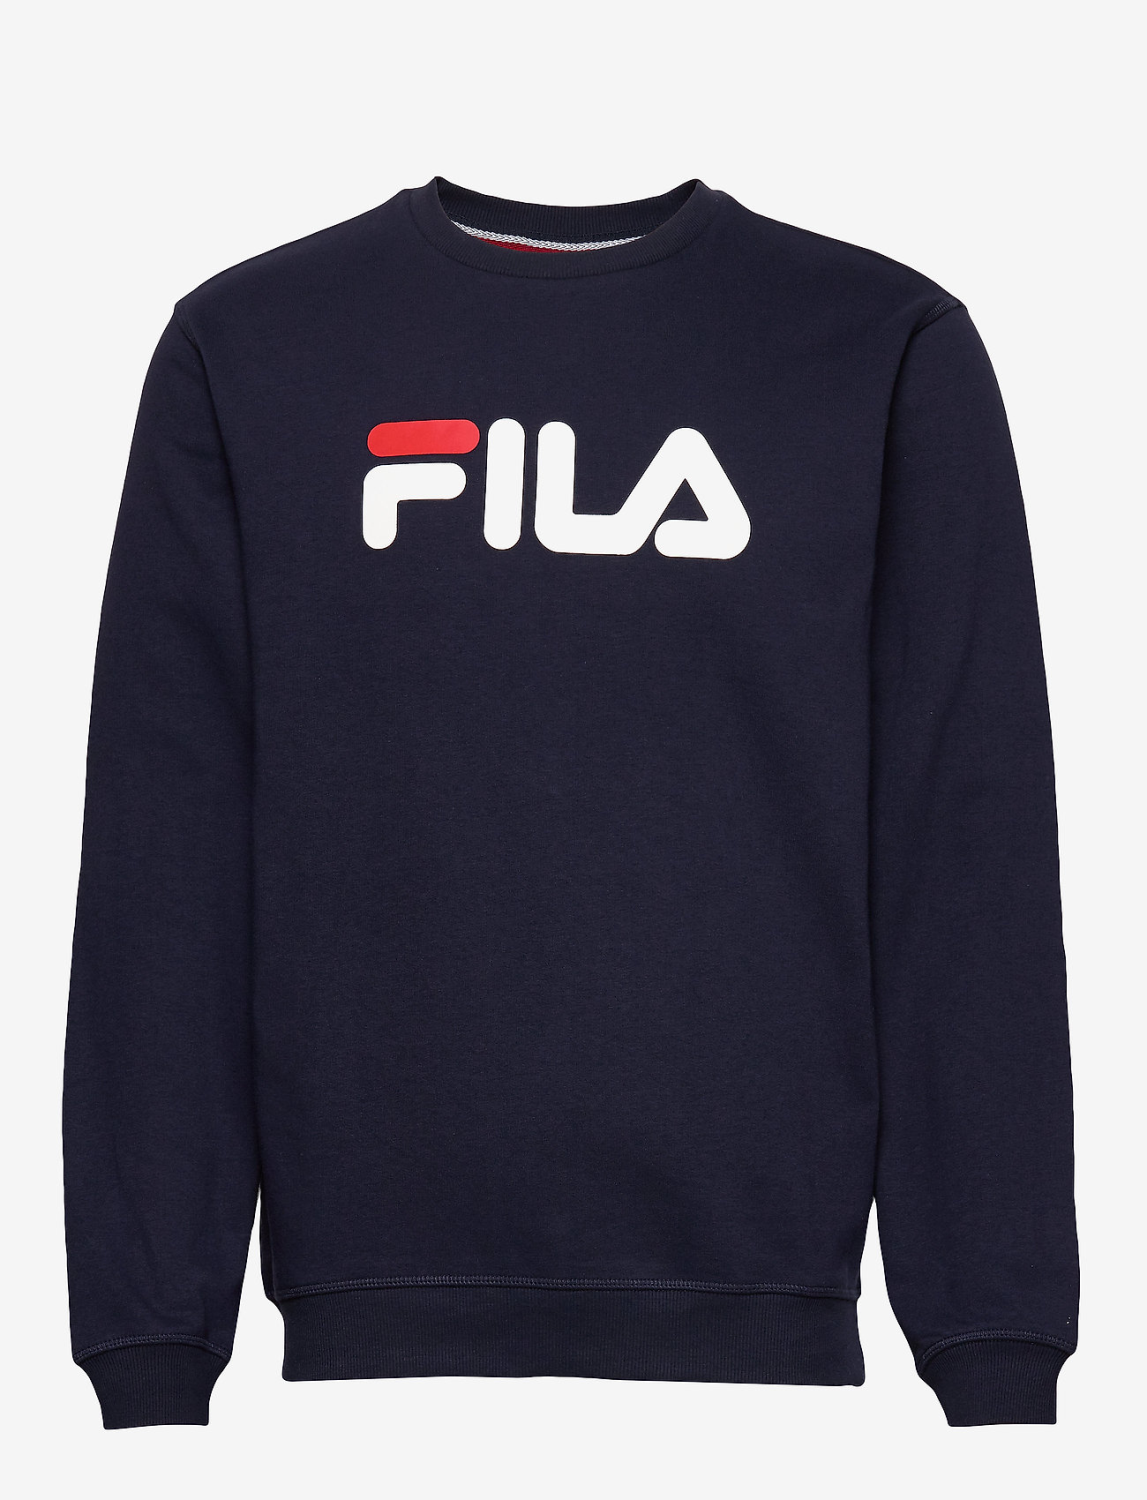 VIOLO CREW SWEAT BLACK IRIS - FILA